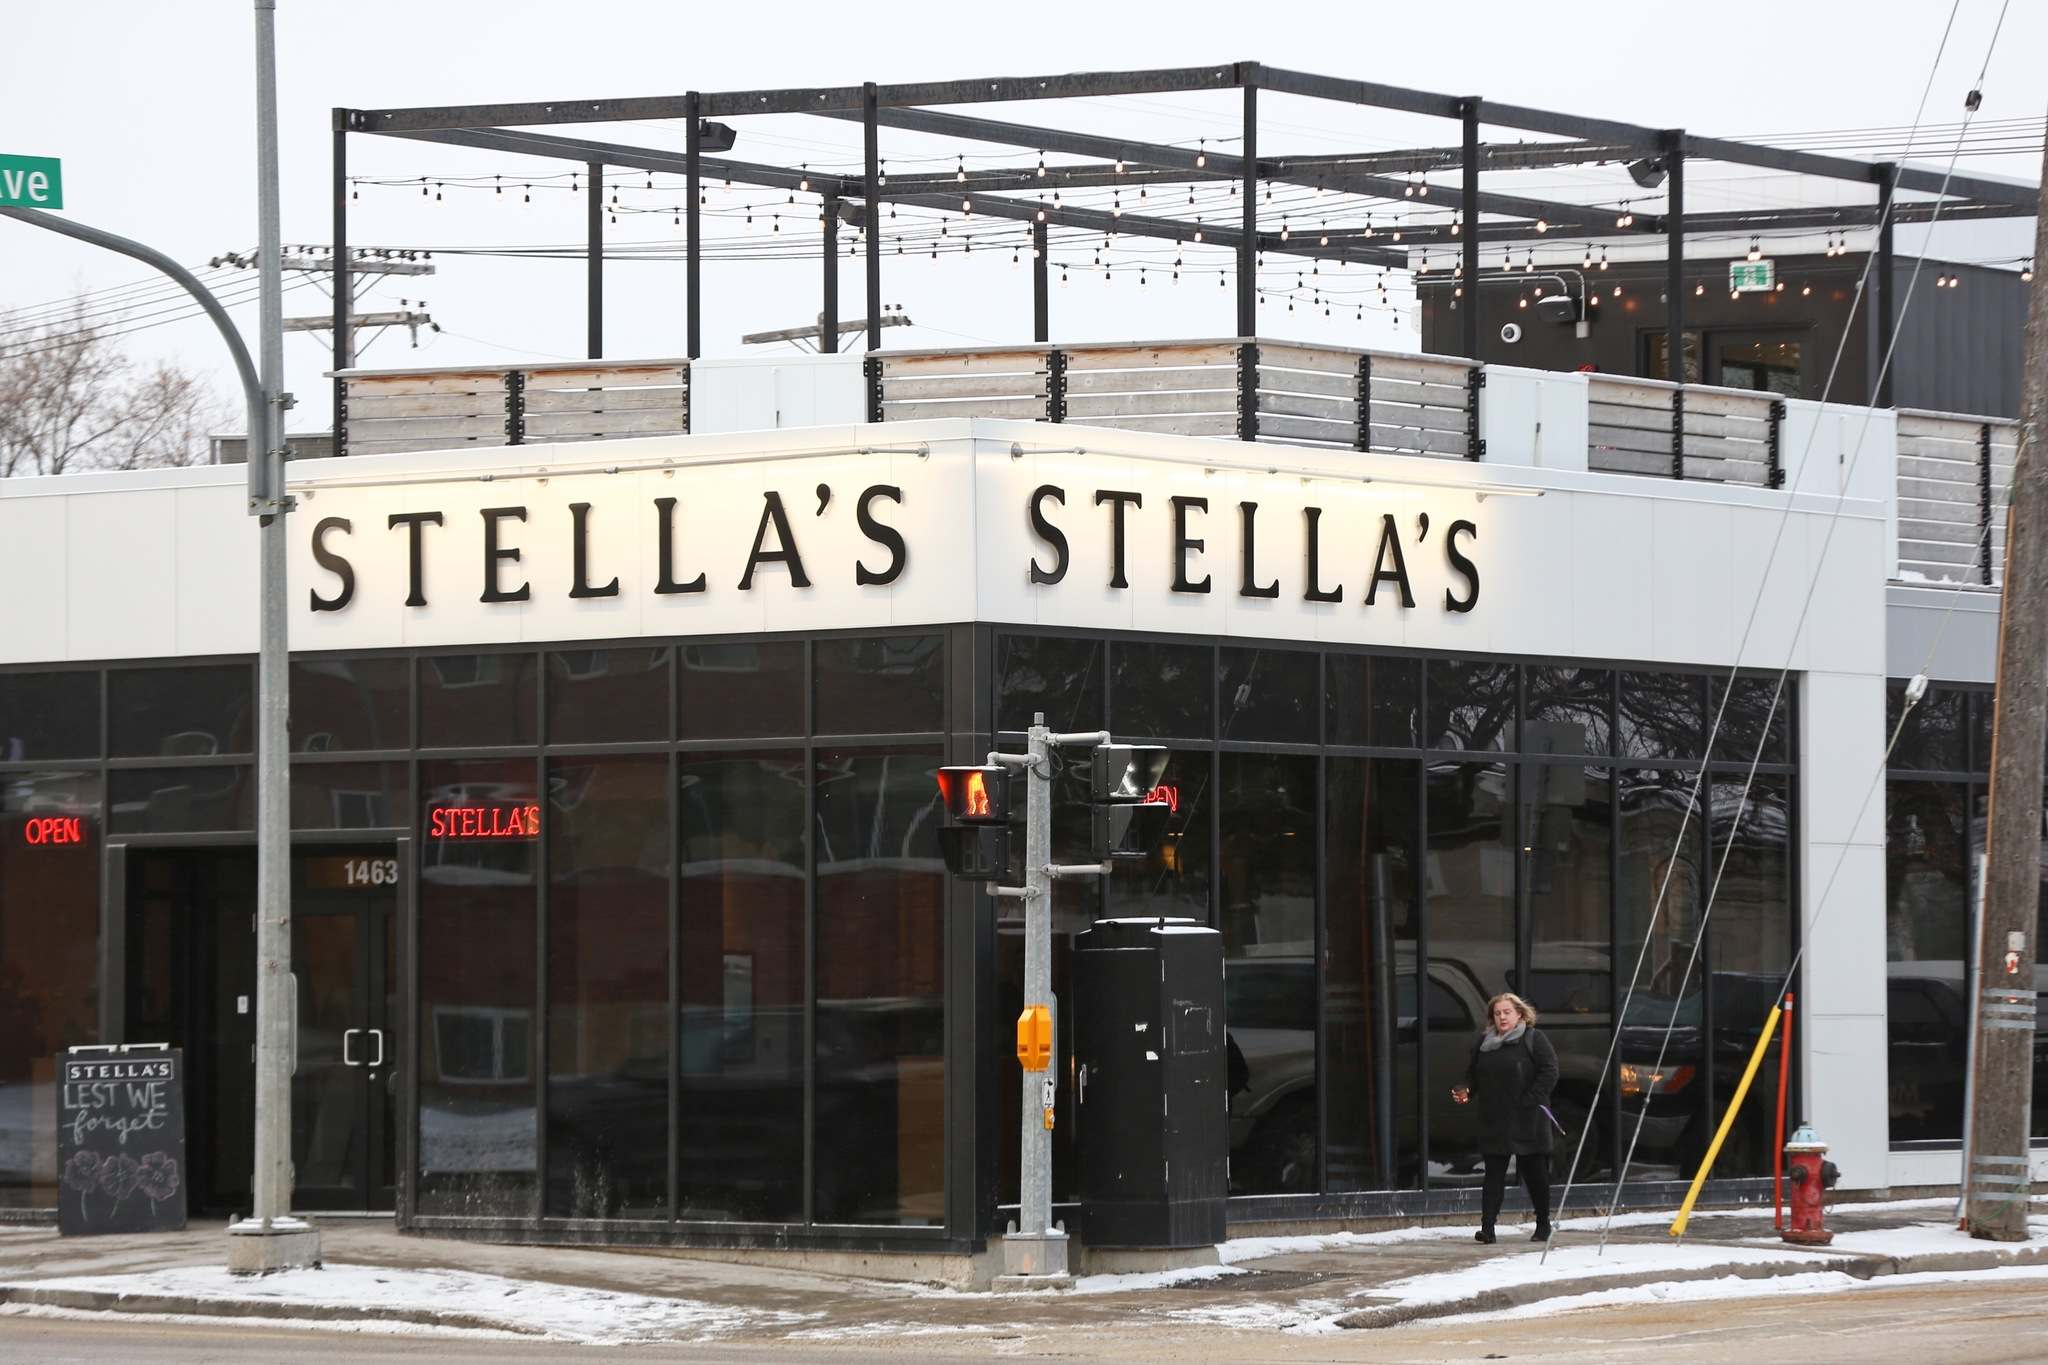 For front-line staff currently working at Stella's seven locations, this past week has been especially stressful. (Mike Deal / Winnipeg Free Press files)</p>